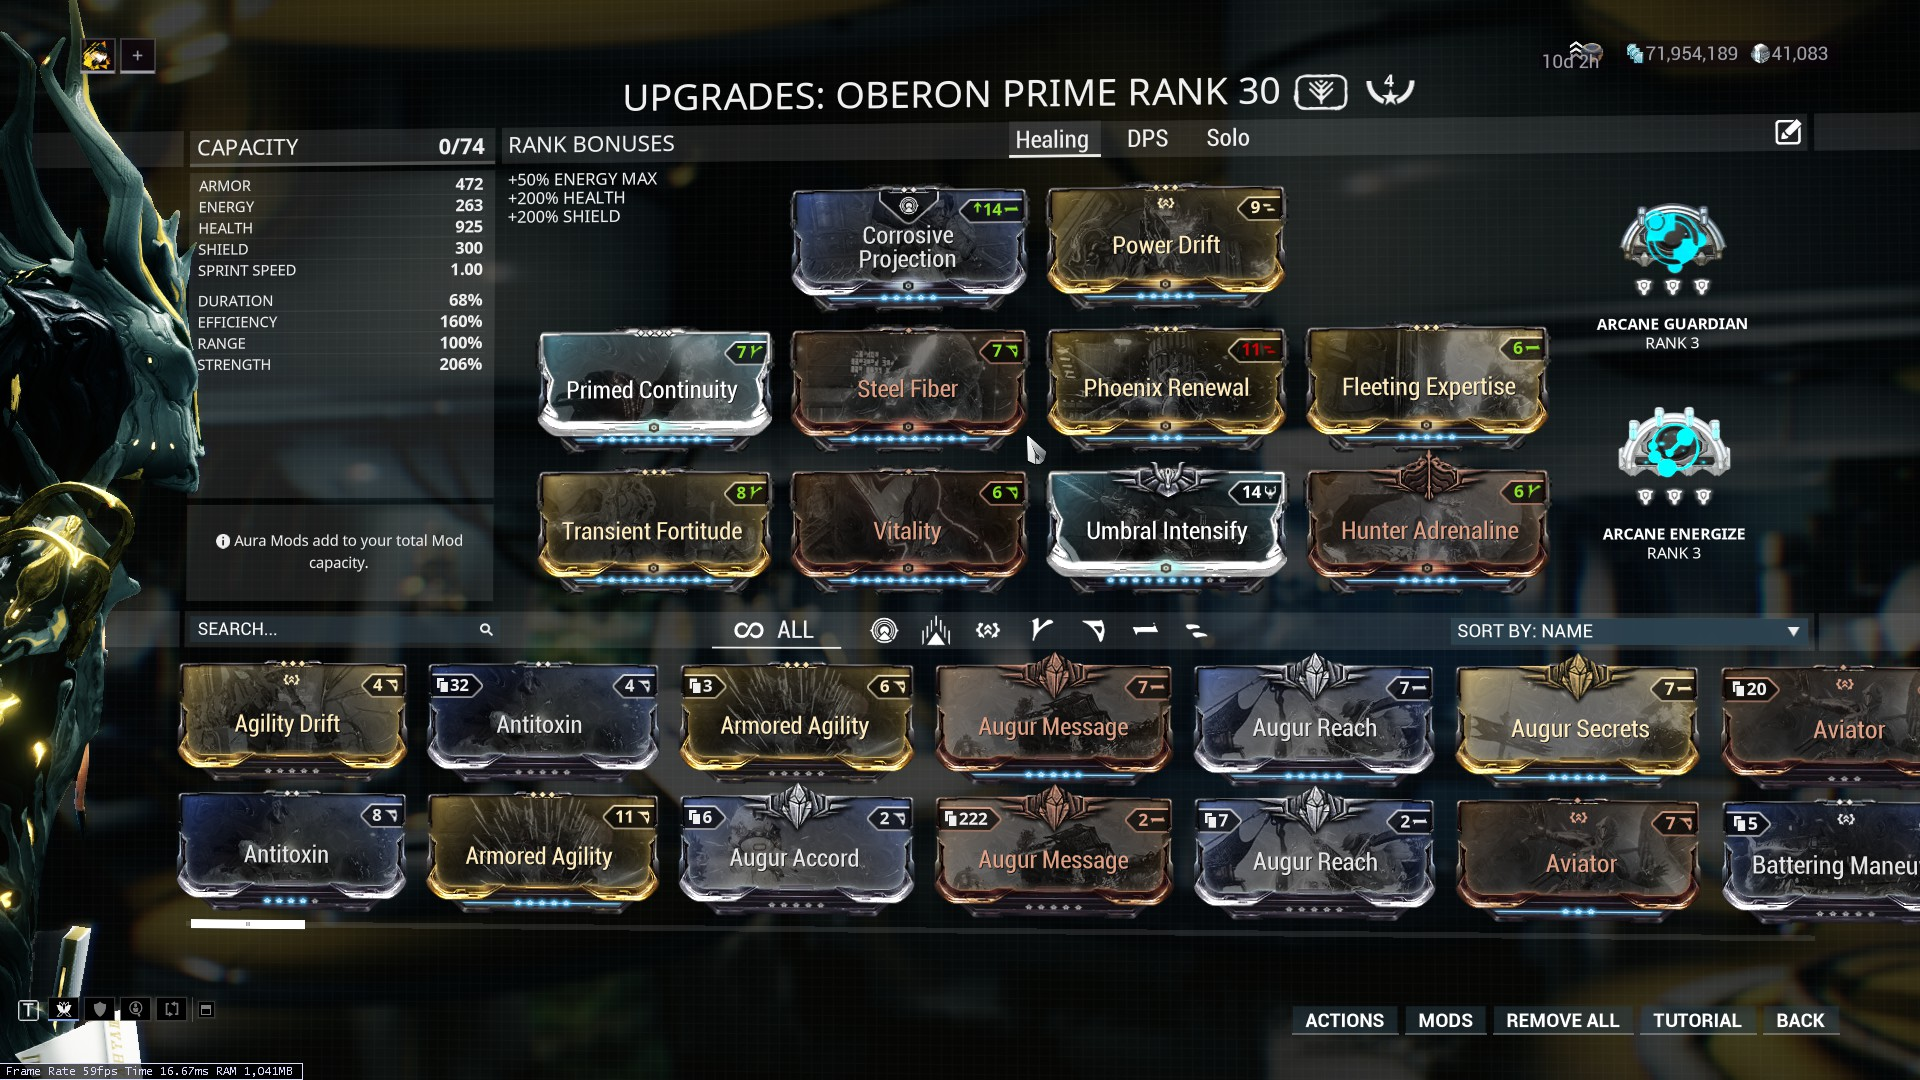 Is it a good build for oberon prime? - Players helping Players